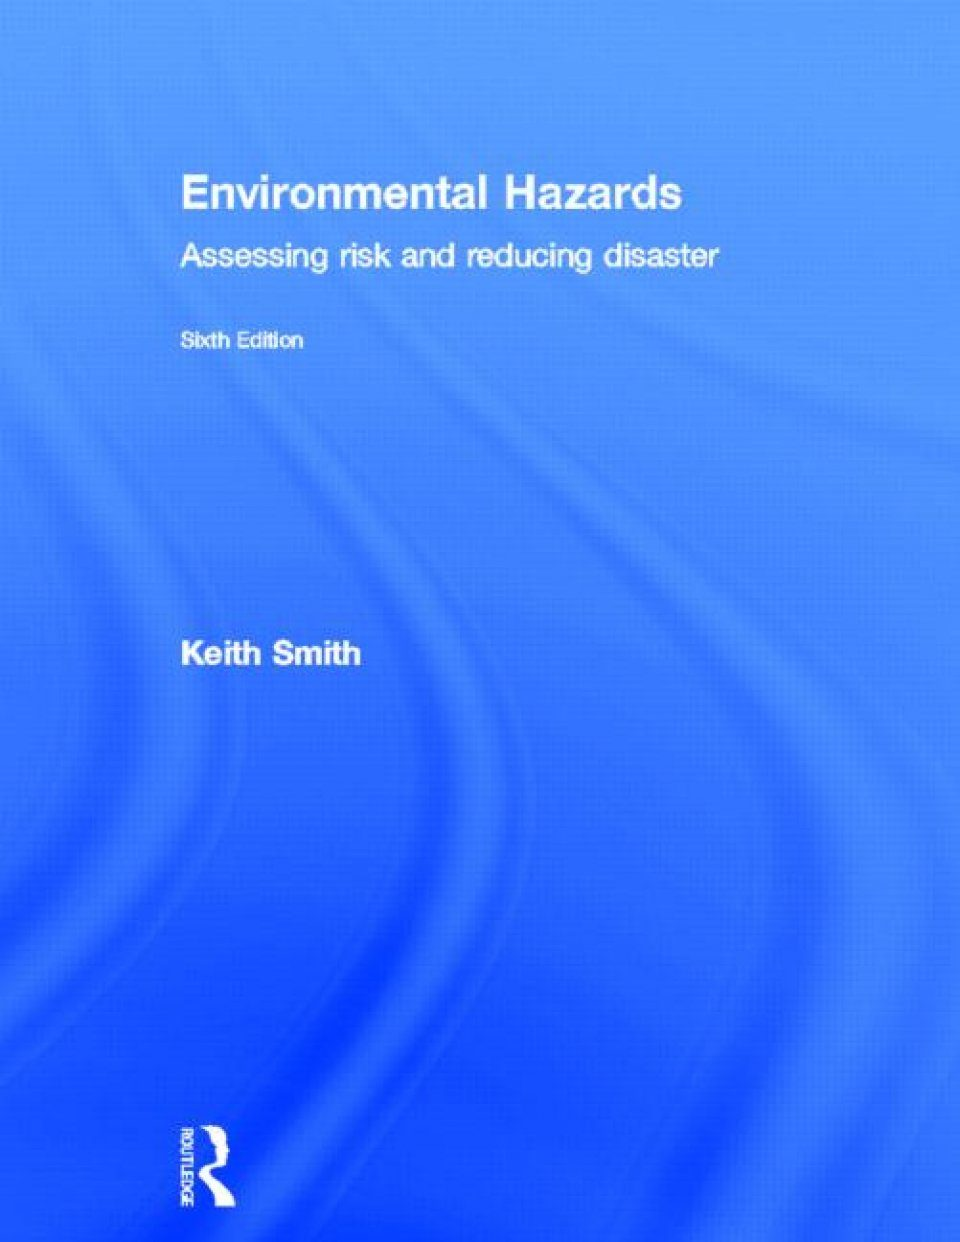 environmental hazards Environmental health and safety 360trainingcom is the largest provider of osha safety training online, offering hundreds of programs along with osha outreach training for construction and general industry, underground storage tank training, mine safety training, department of transportation (dot) training and many more.